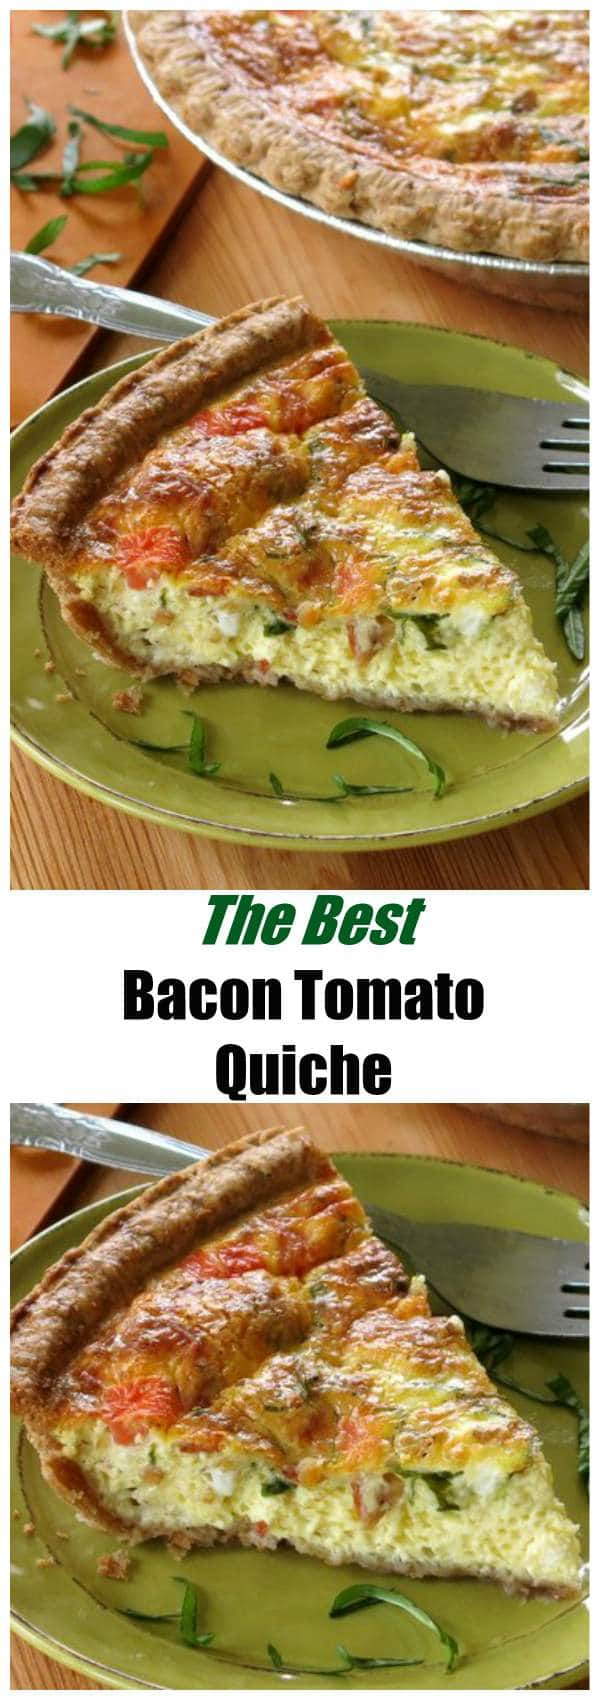 Tomato Bacon and Basil Quiche Recipe - perfect for breakfast, lunch or dinner! Plus quiche is the easiest freezer recipe ever! So make two!